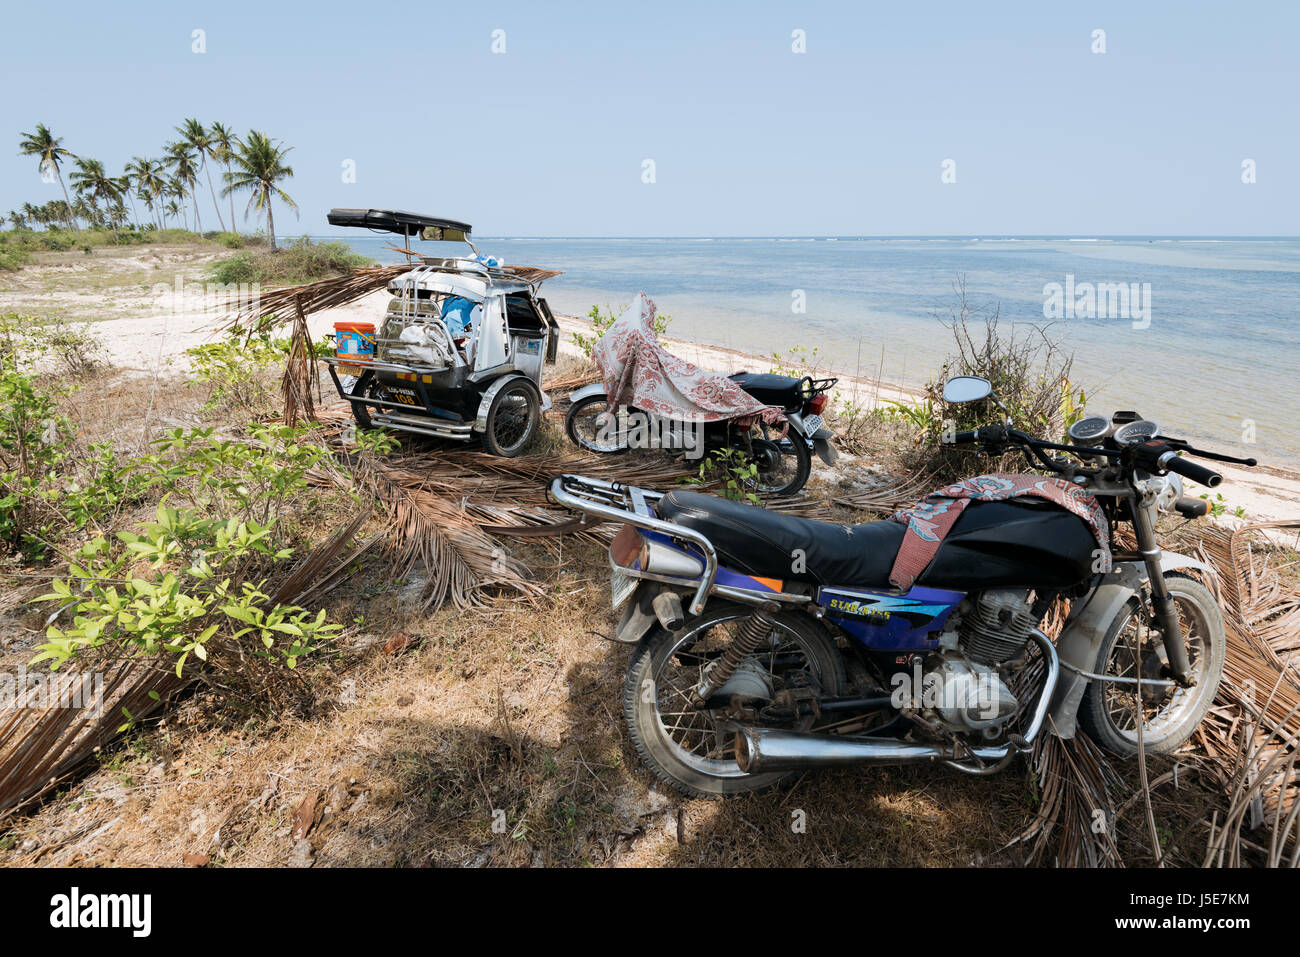 Quezon Island, Philippines - April 13, 2017: Tricycle and motorcycles left behind on a beach by fishermans who went - Stock Image